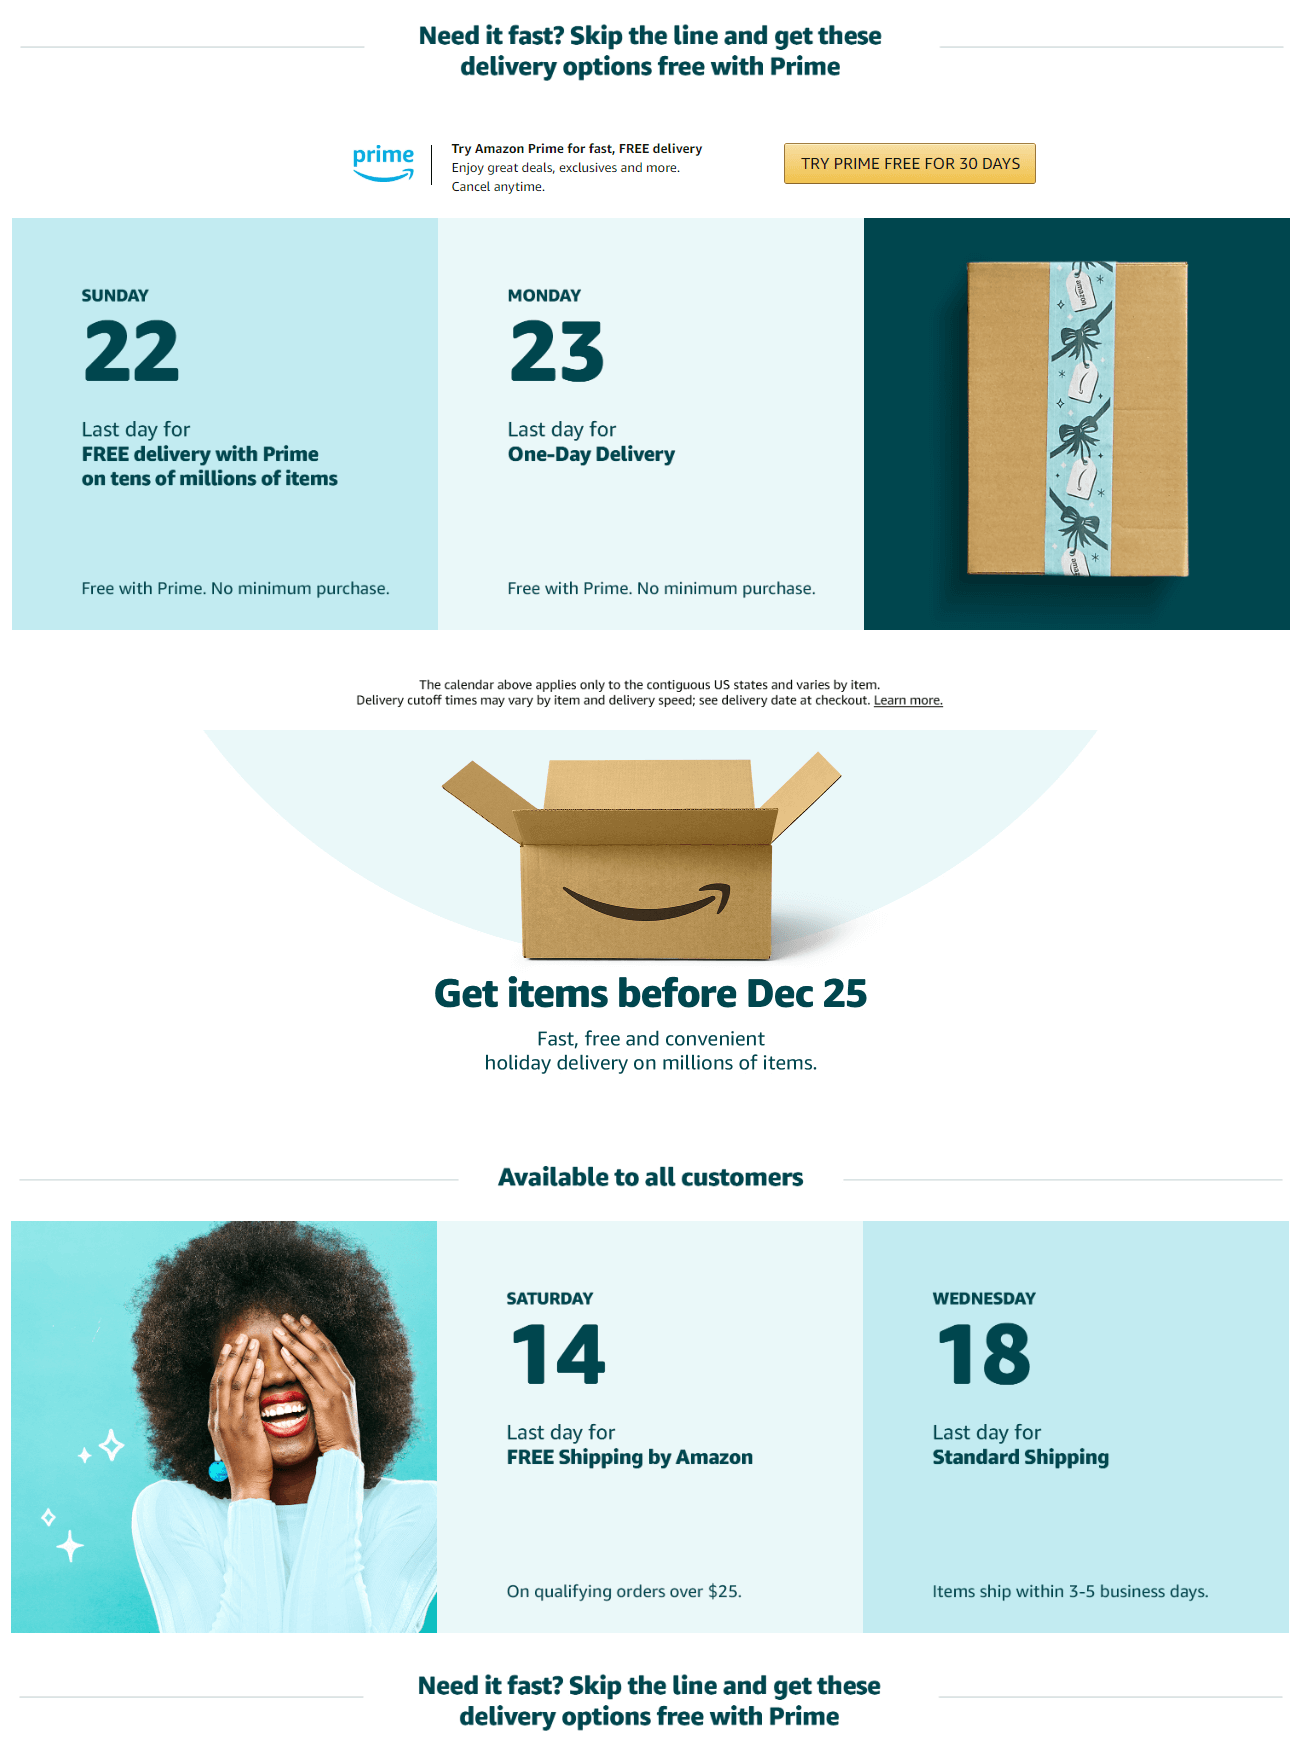 Amazon delivery cutoff dates for Christmas